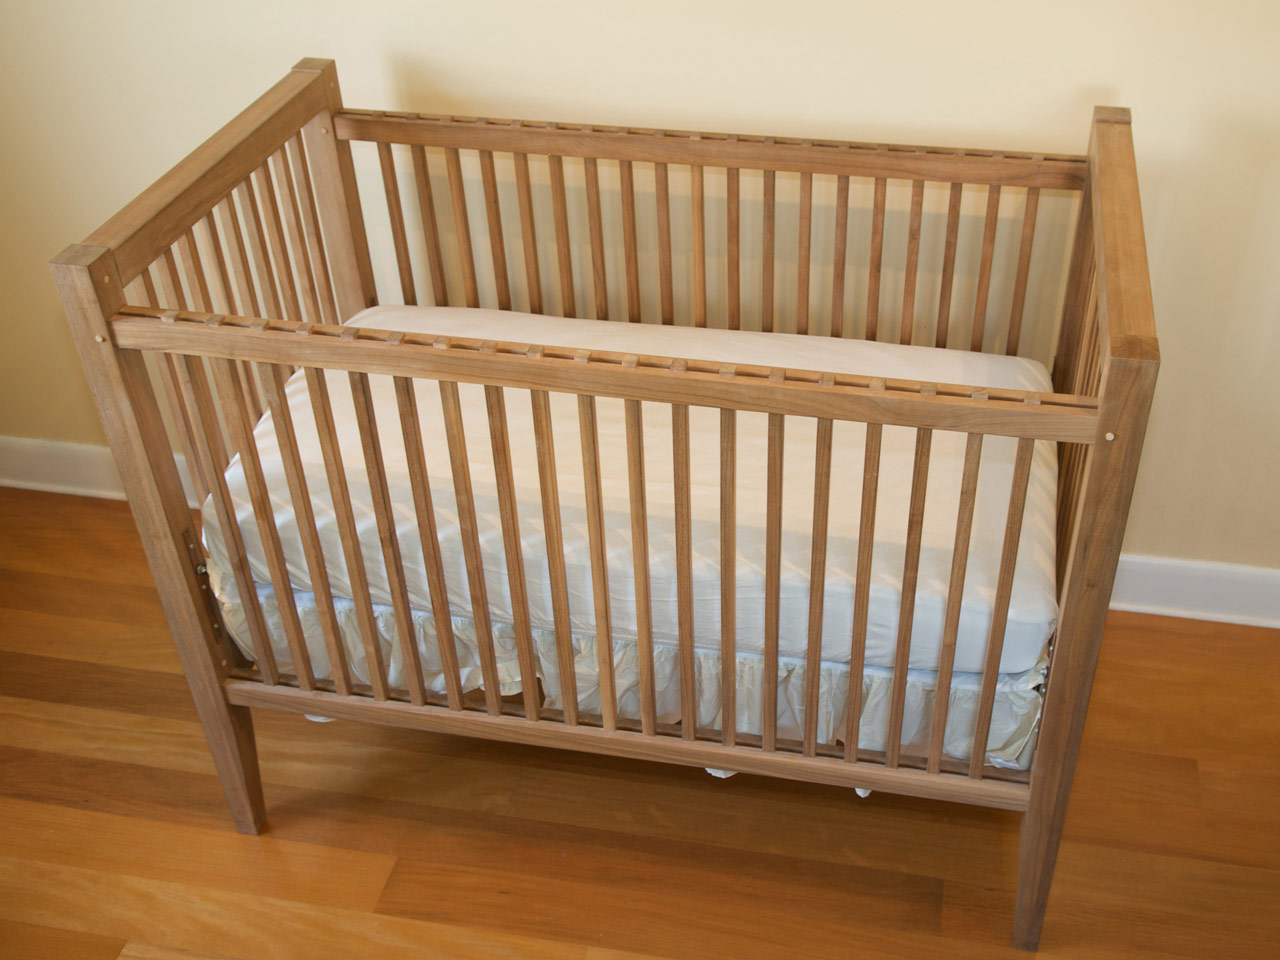 Wooden crib for babies - Baby Cribs Photos Crib Oblique